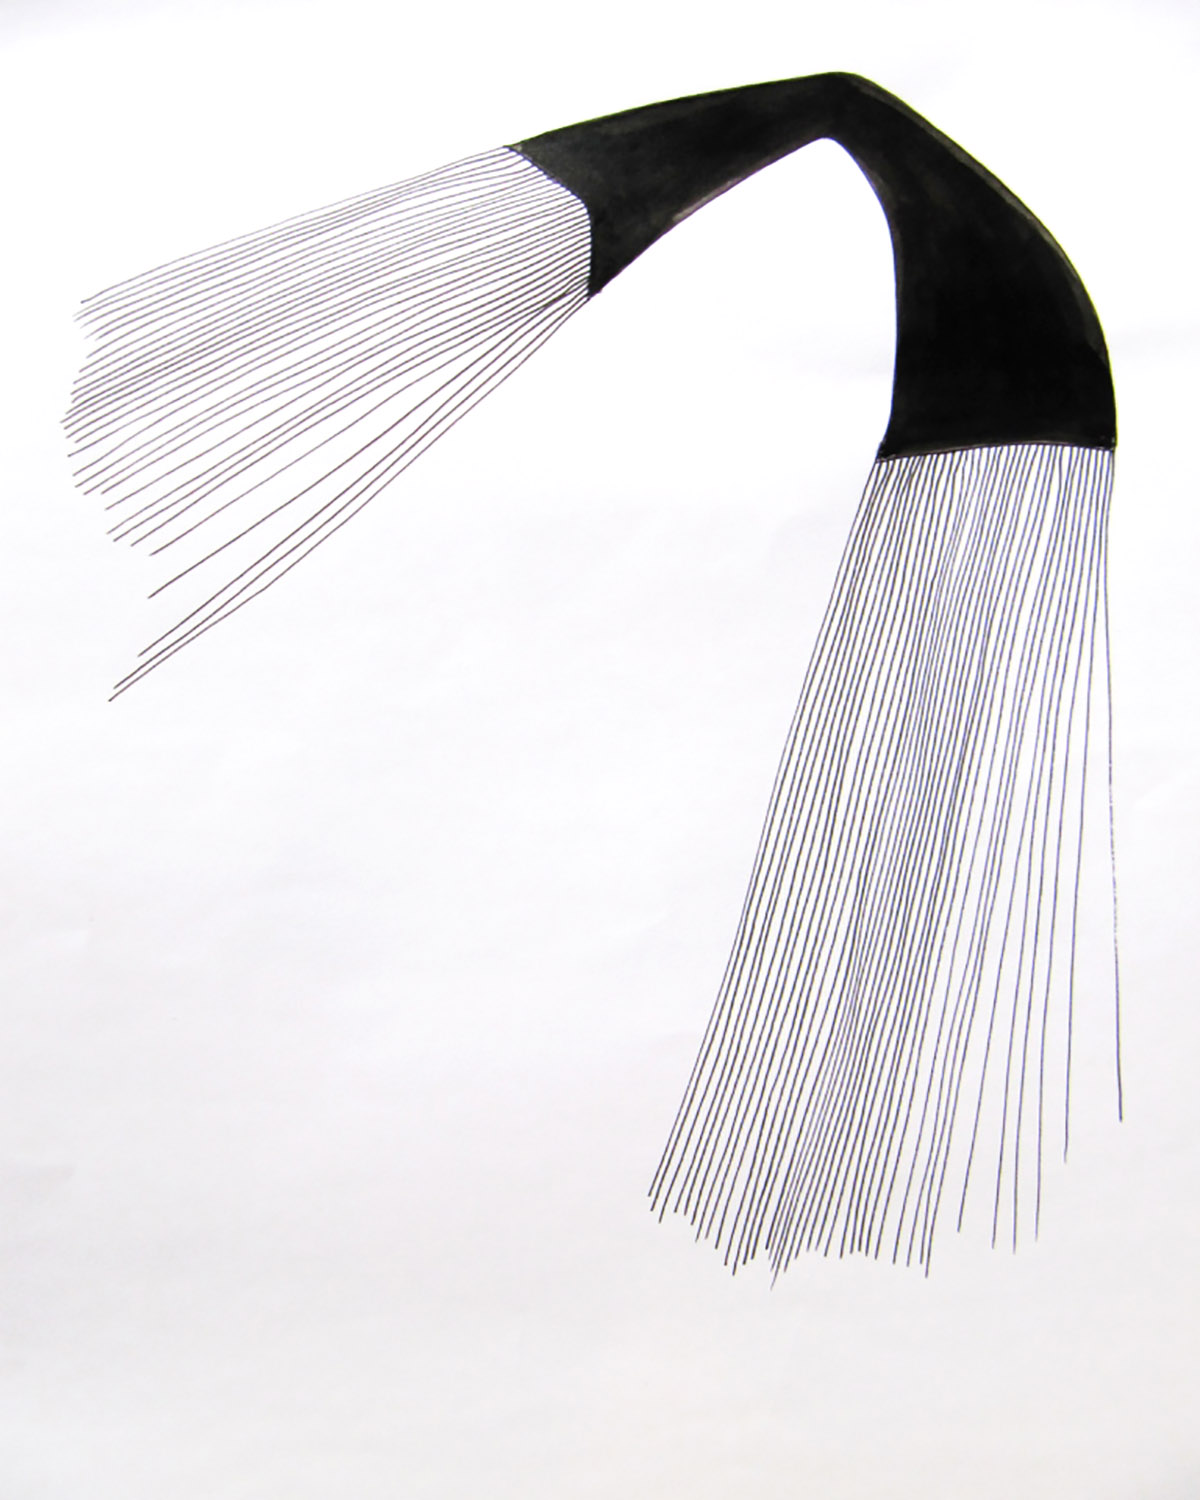 2009 - 2011 Wind Brush | Liat Klein